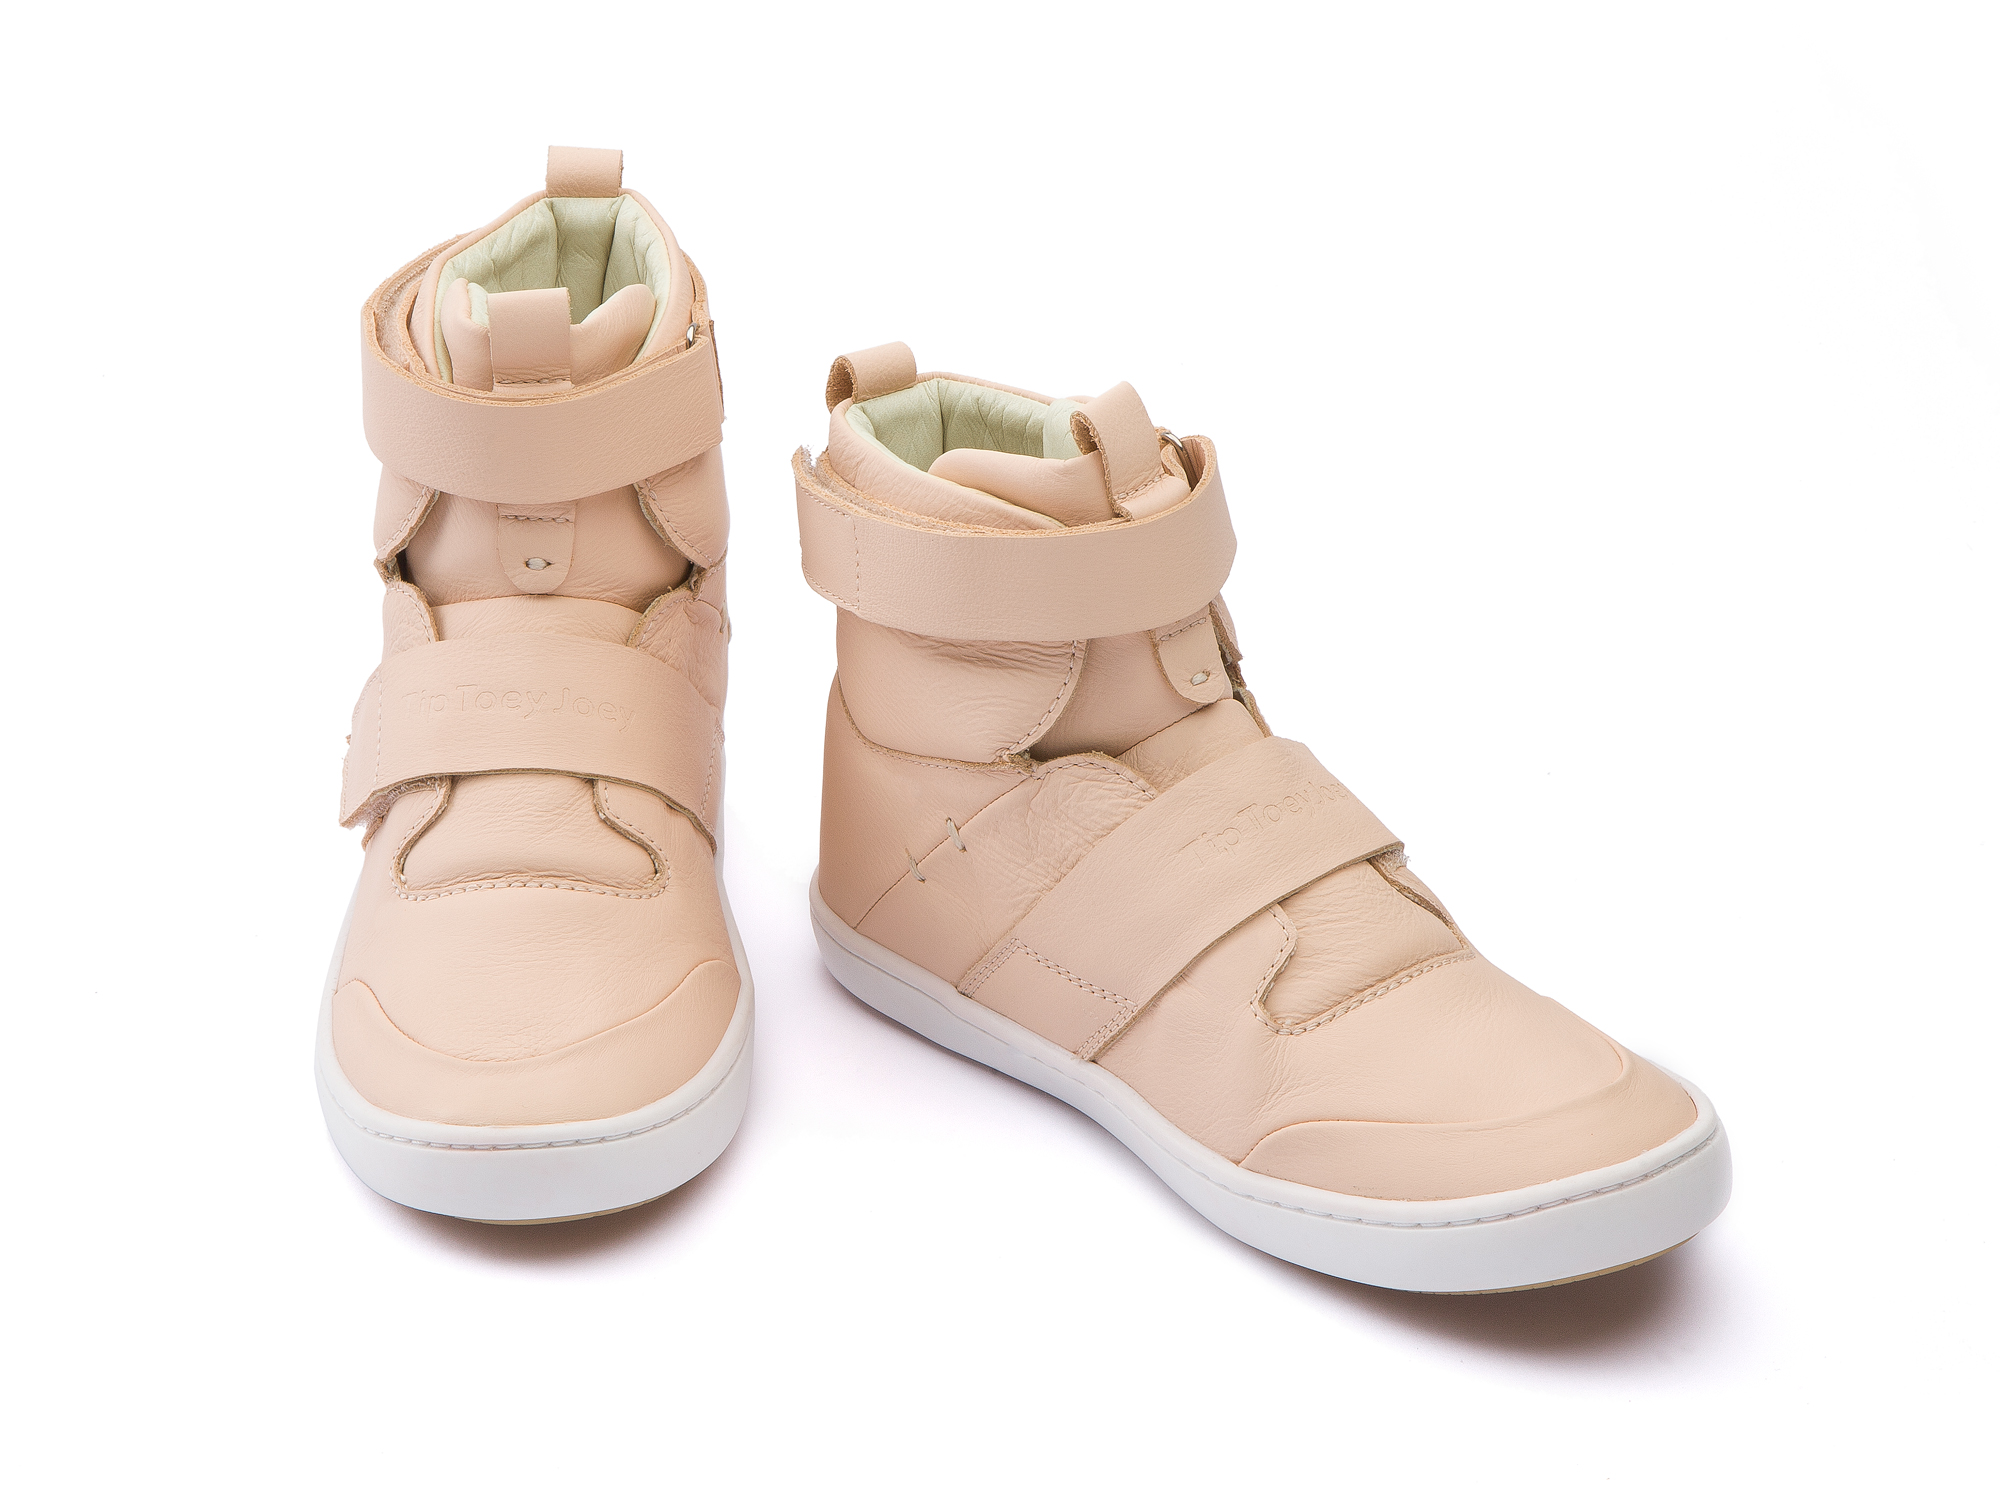 Bota Hoop Papaya Cream Junior 4 à 8 anos - 1